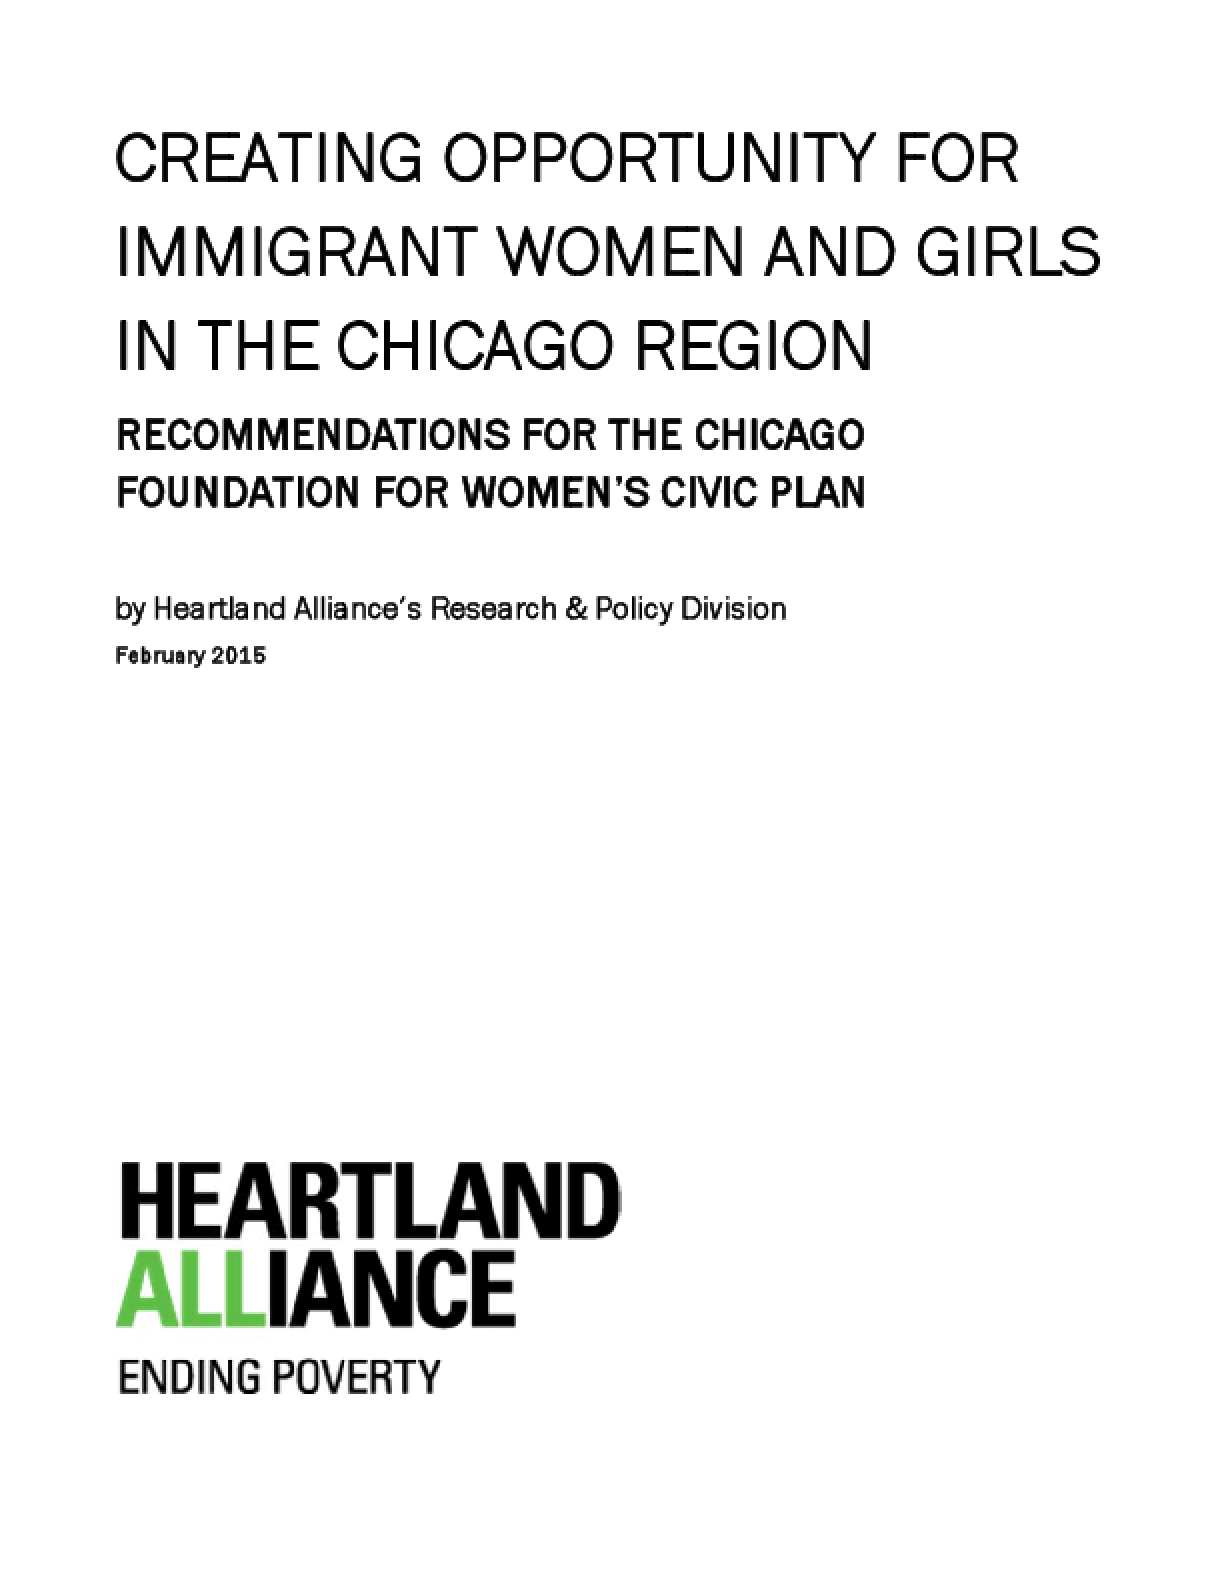 Creating Opportunity for Immigrant Women and Girls in the Chicago Region: Recommendations for the Chicago Foundation for Women's Civic Plan